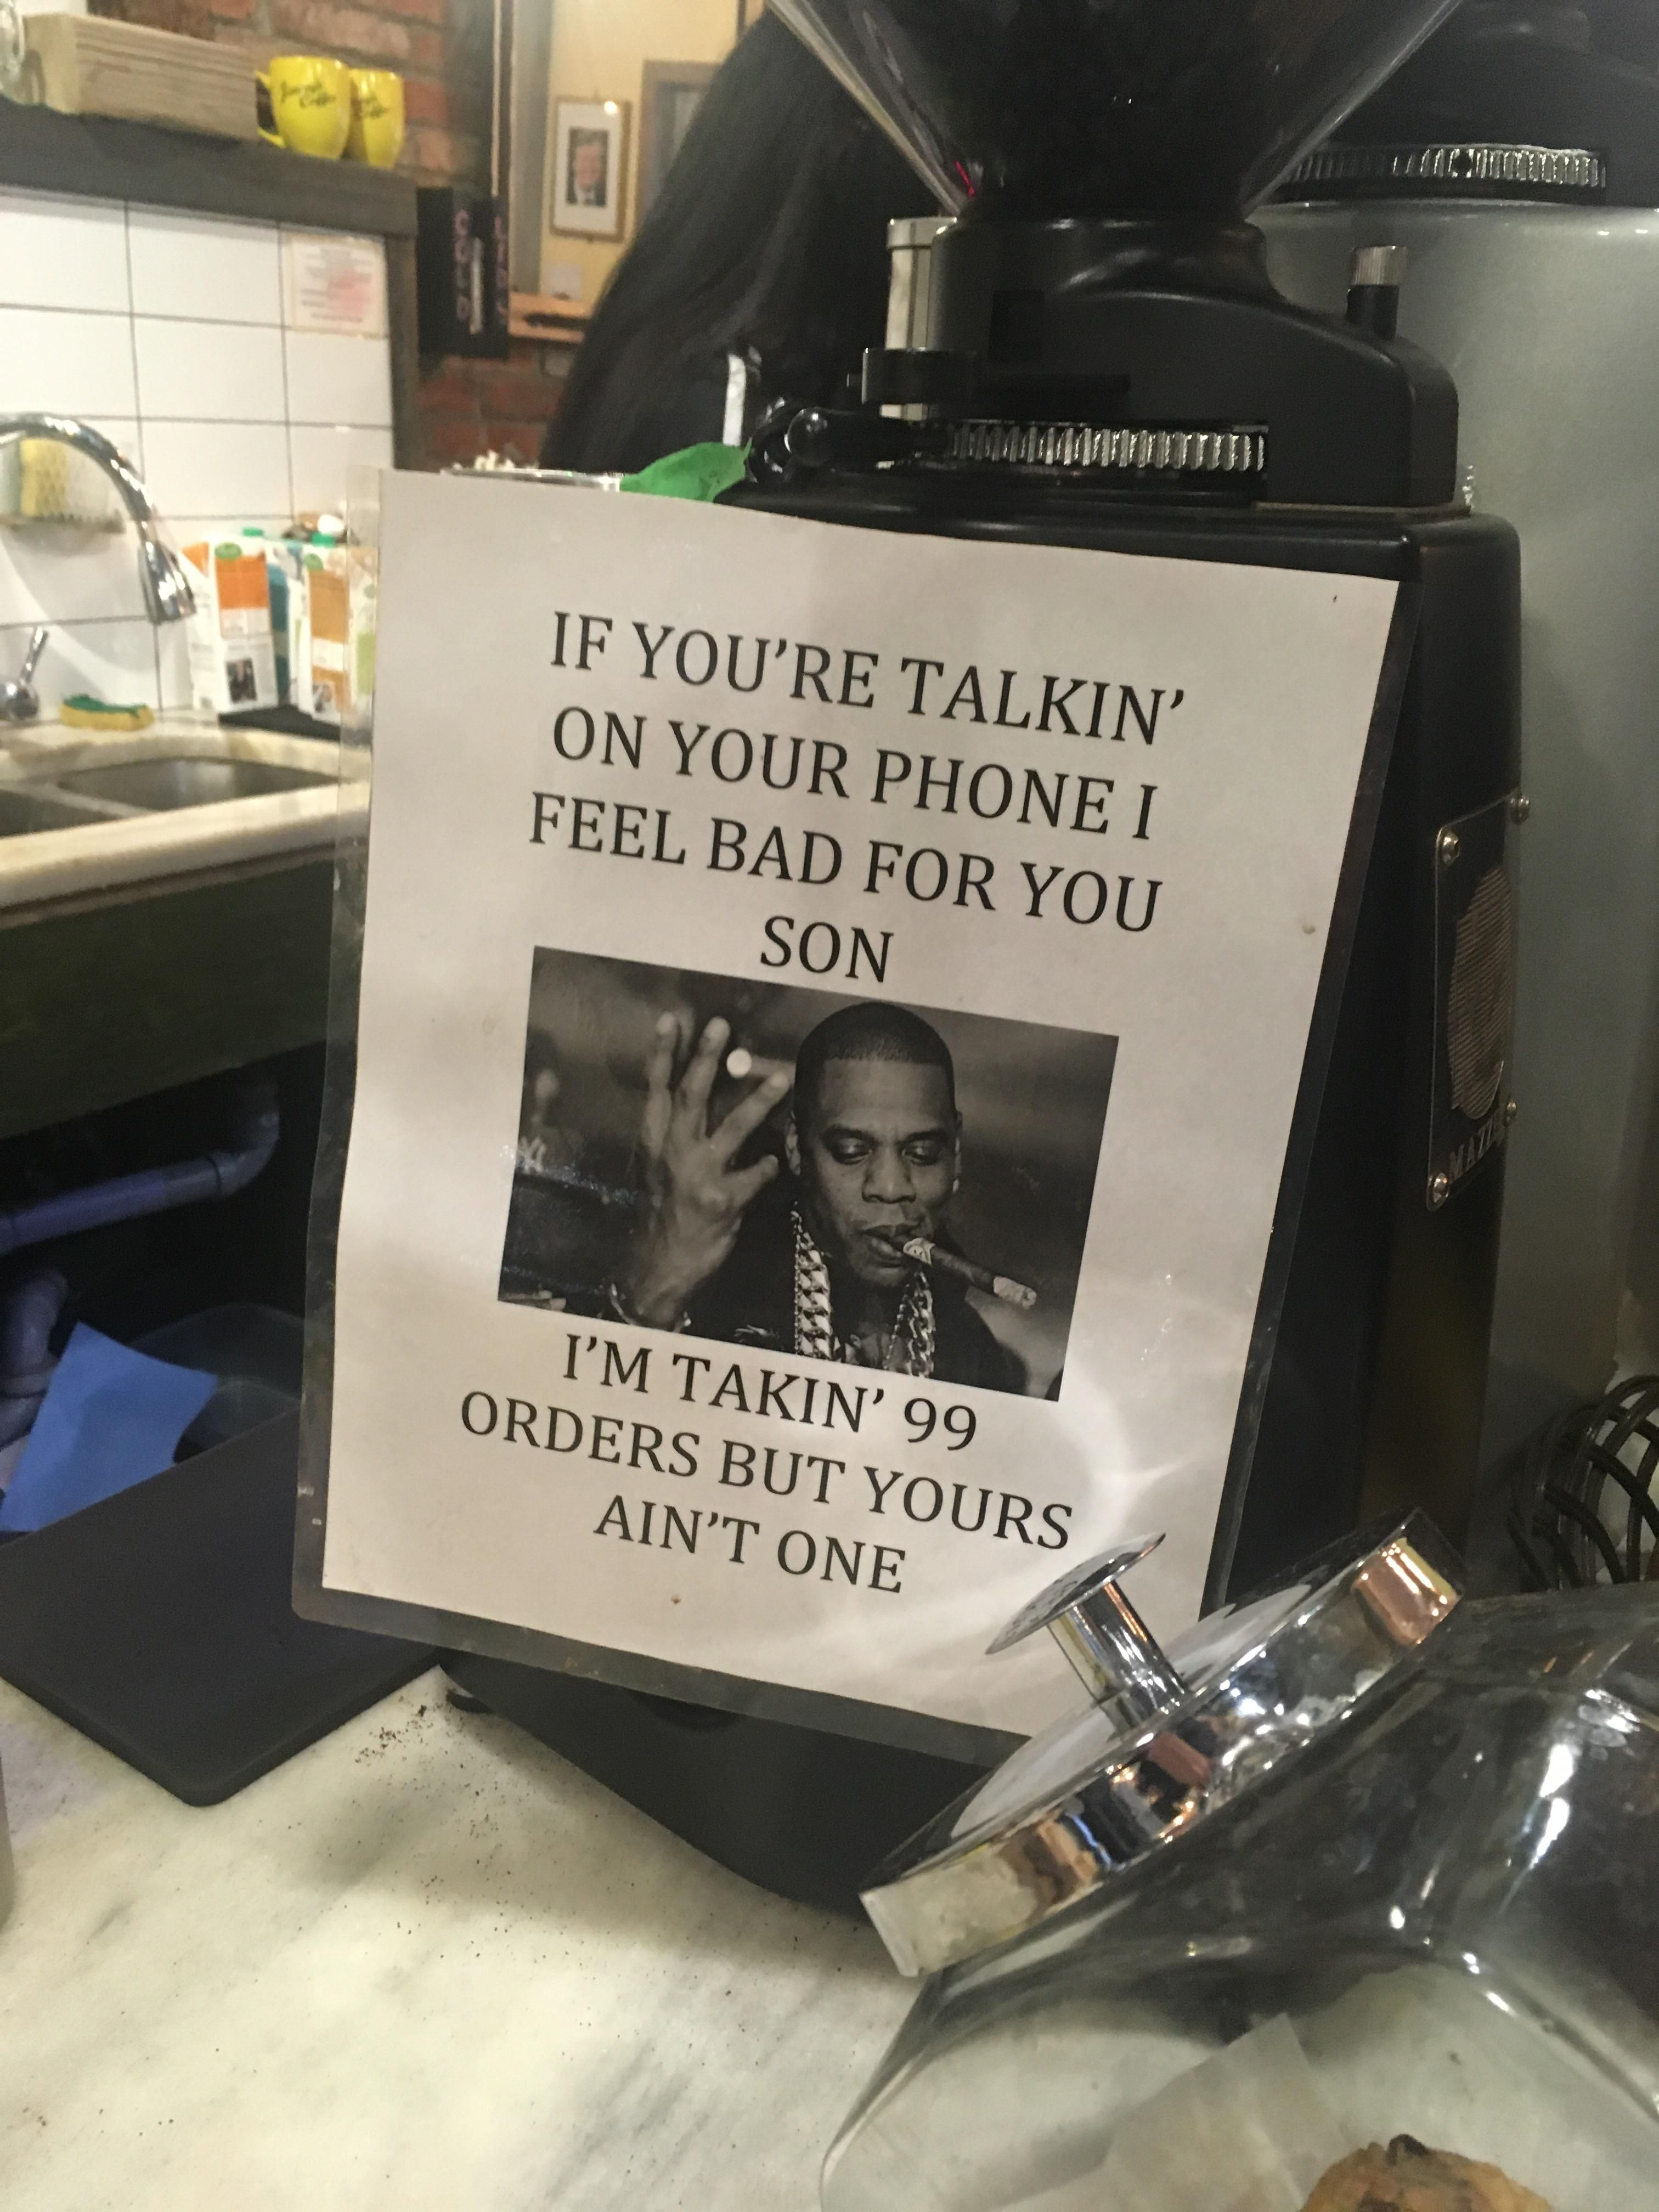 In my local coffee shop